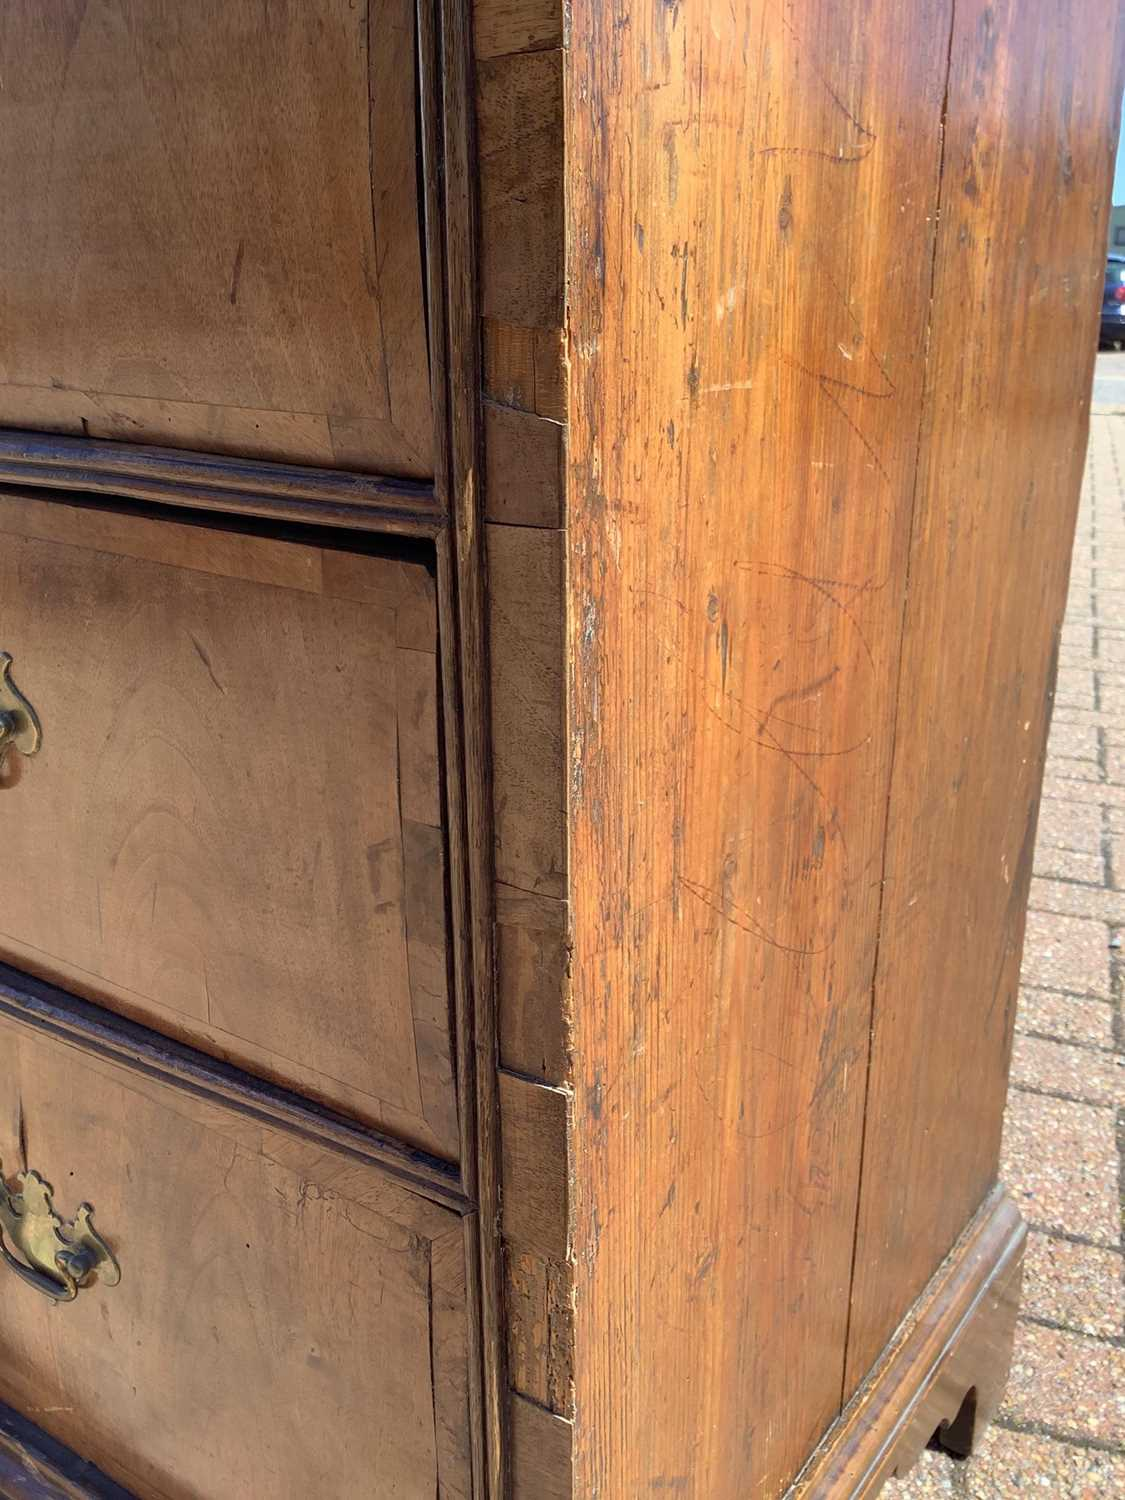 19th century Continental walnut chest of drawers - Image 2 of 7